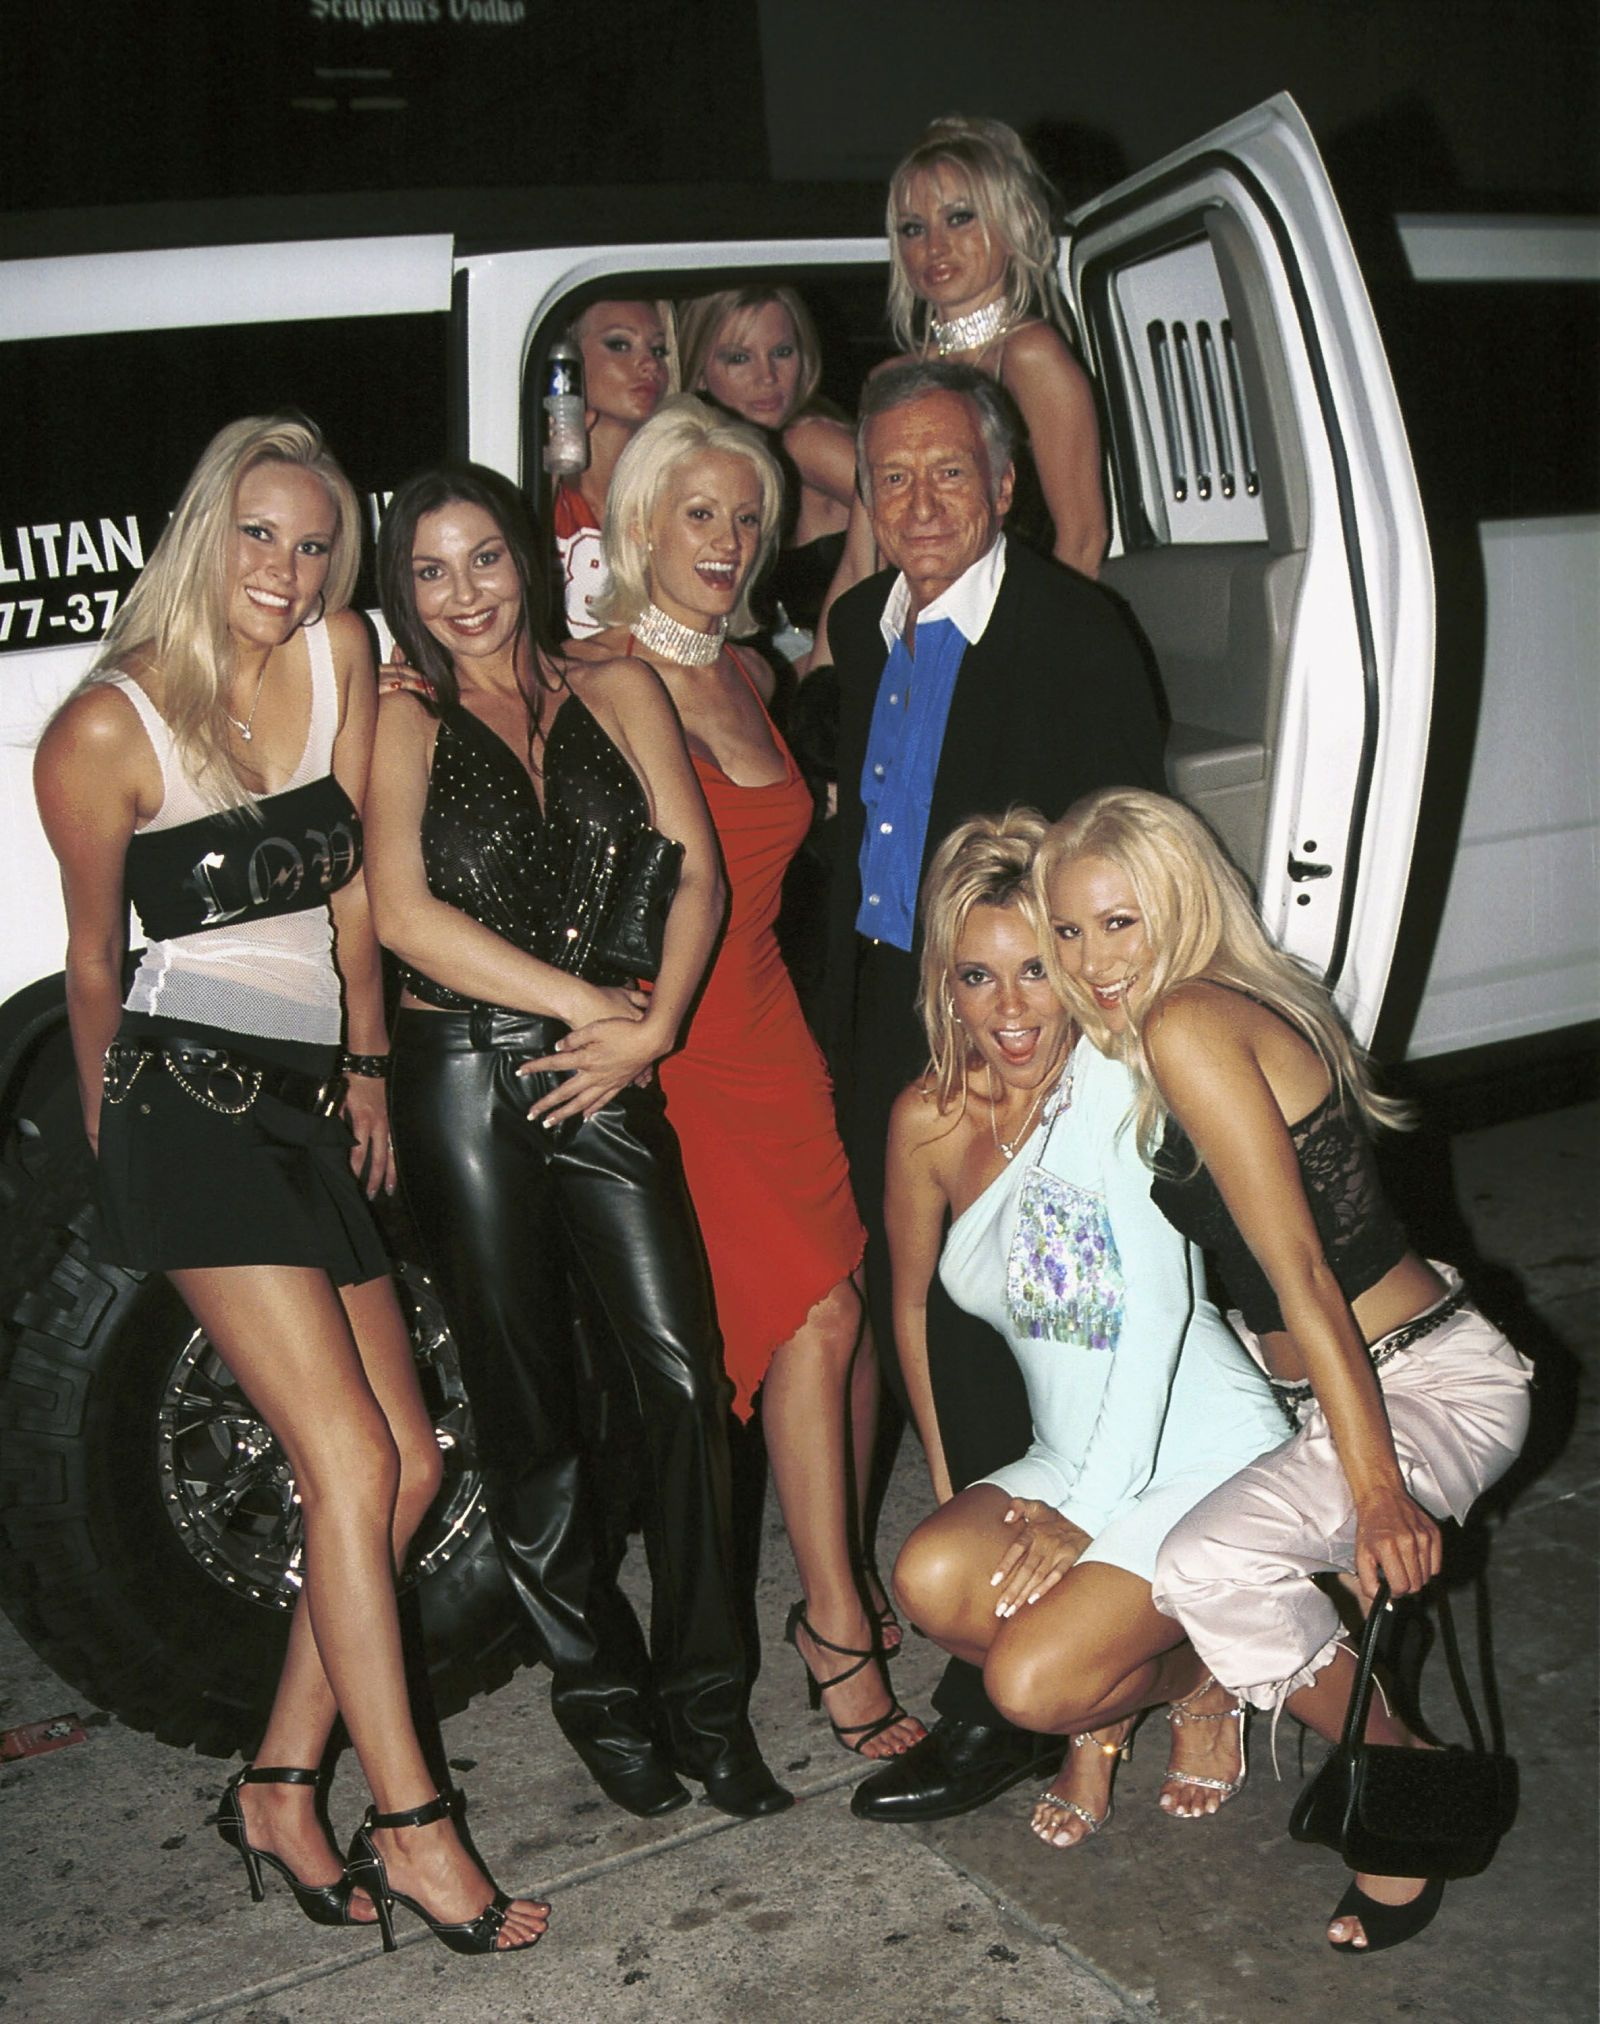 The 14 Worst Things About Hugh Hefner As Revealed In Holly